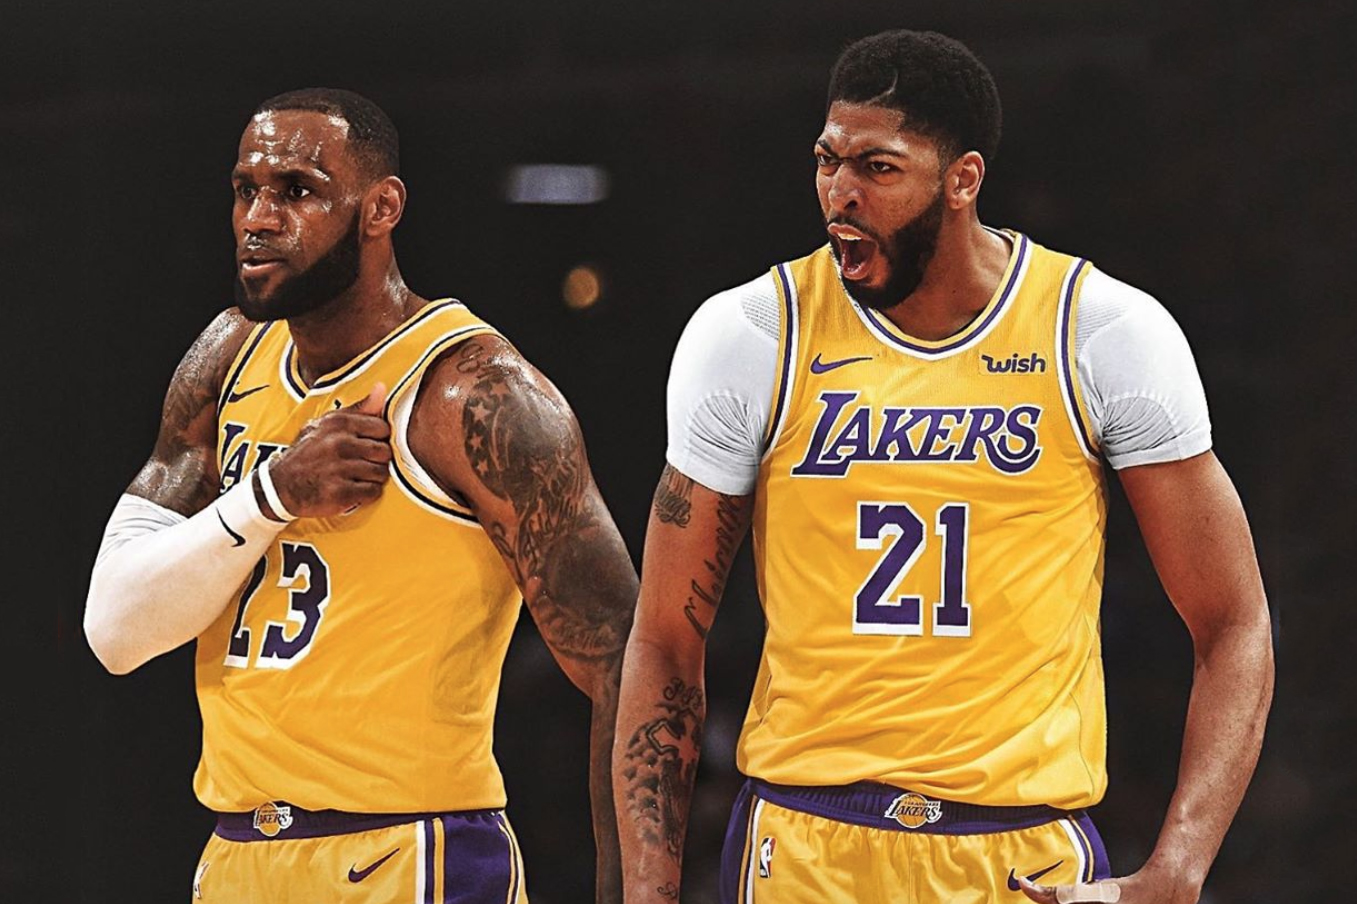 多方消息表示 Anthony Davis 将被 Pelicans 交易至 Lakers